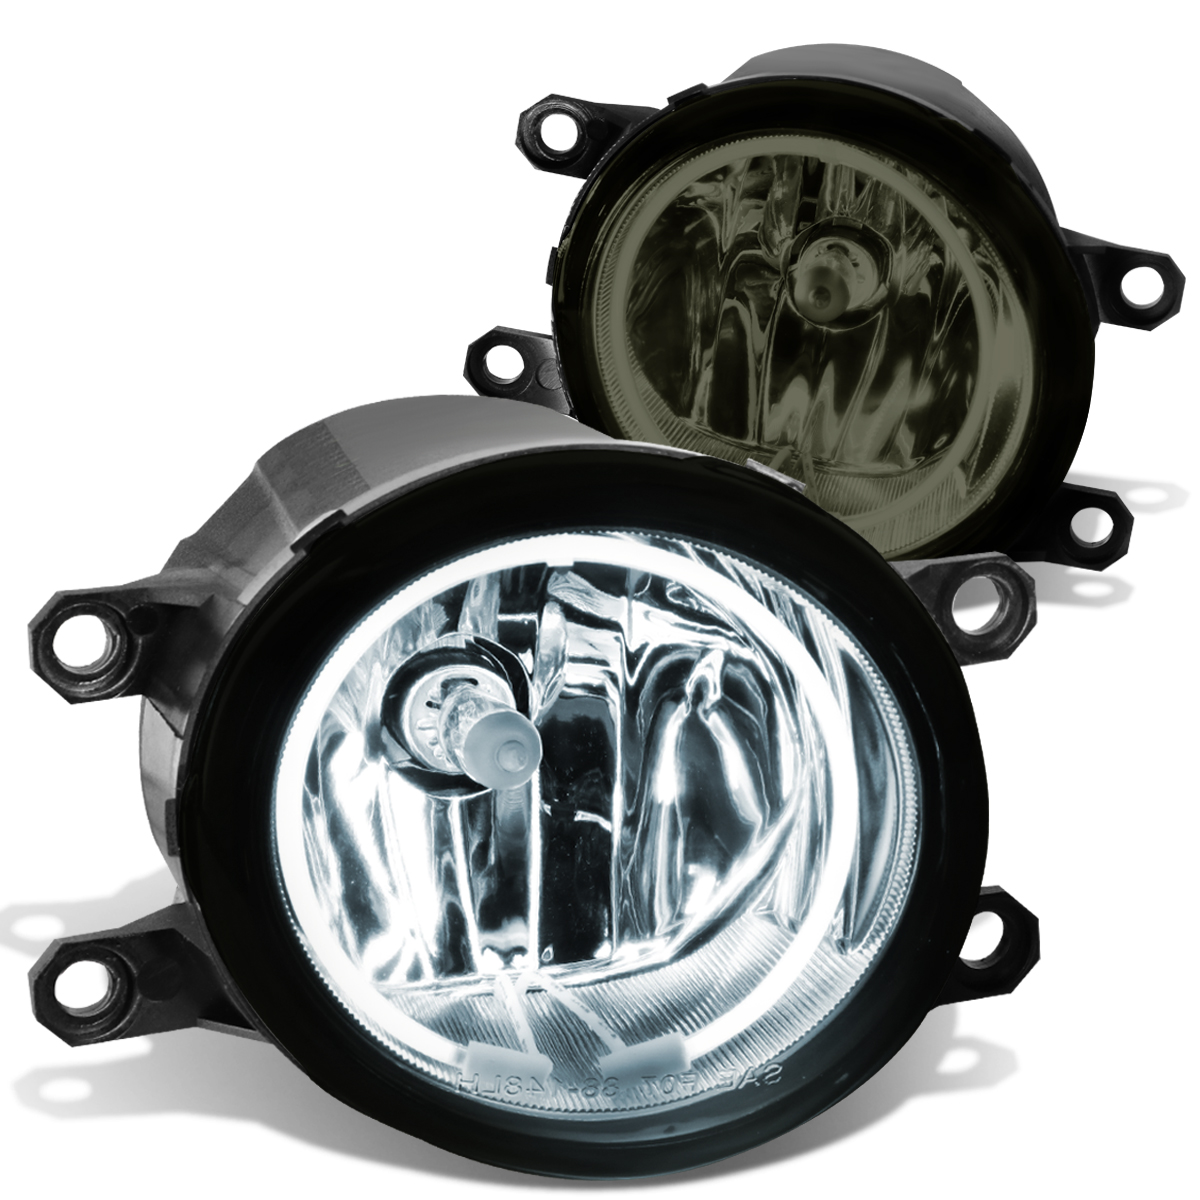 For 07-14 Toyota Camry/Corolla/Tacoma/Lexus RX350 IS250 Halo Ring Fog Light+CCFL Power Inverter Smoked Lens 08 09 10 11 12 13 Left+Right